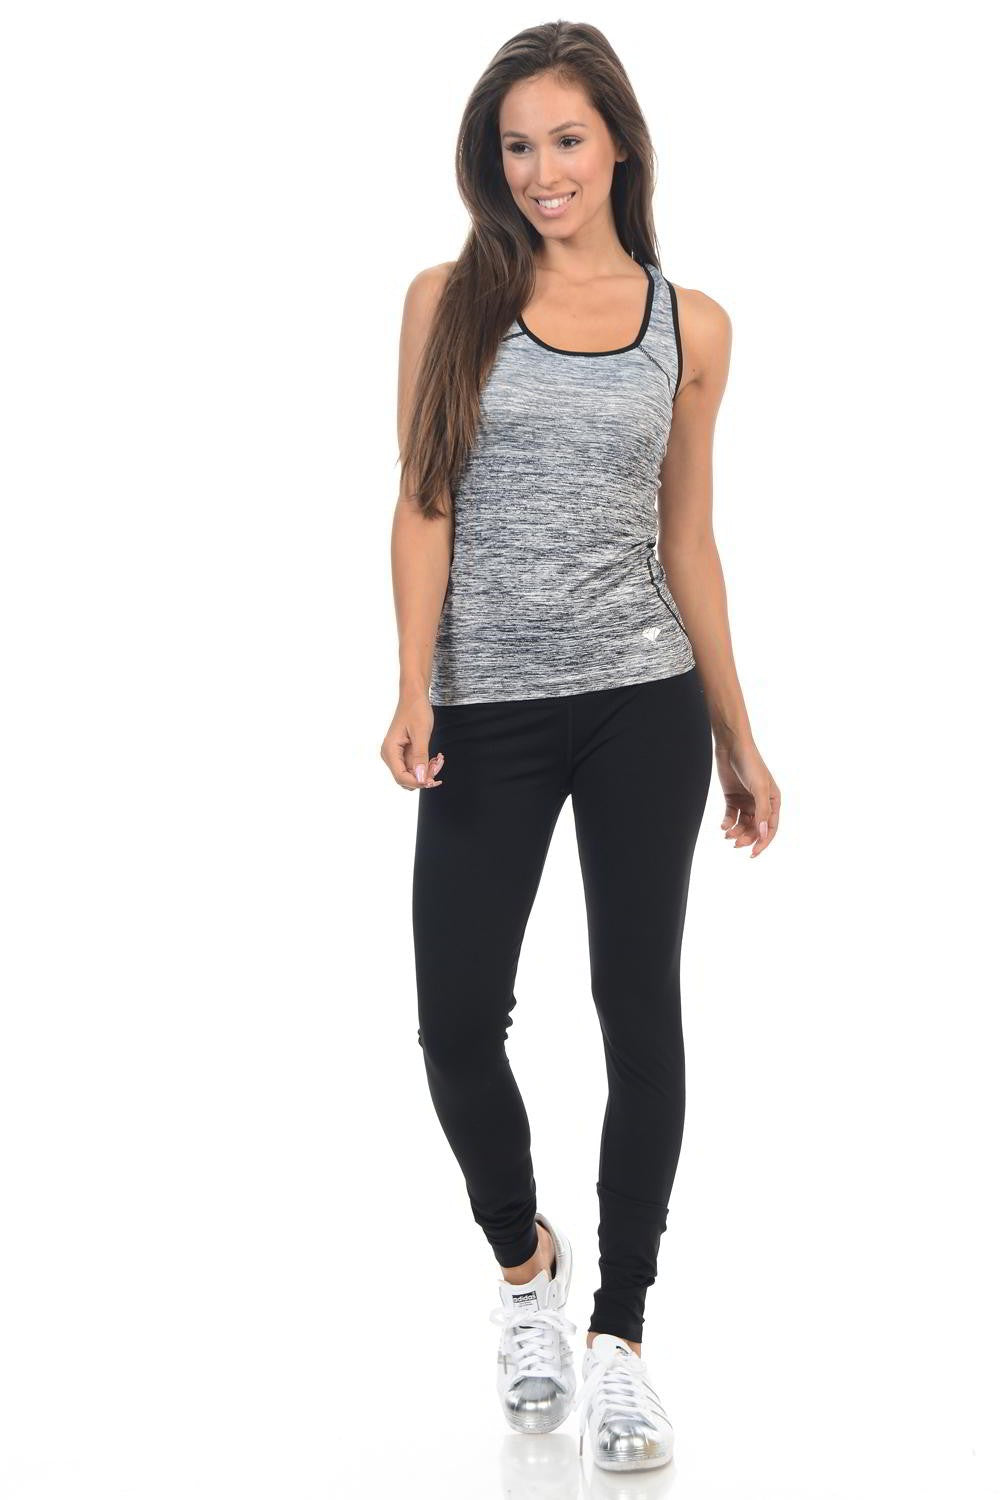 Sweet Look Women's Power Flex Yoga Pant Legging Sportswear - N804X